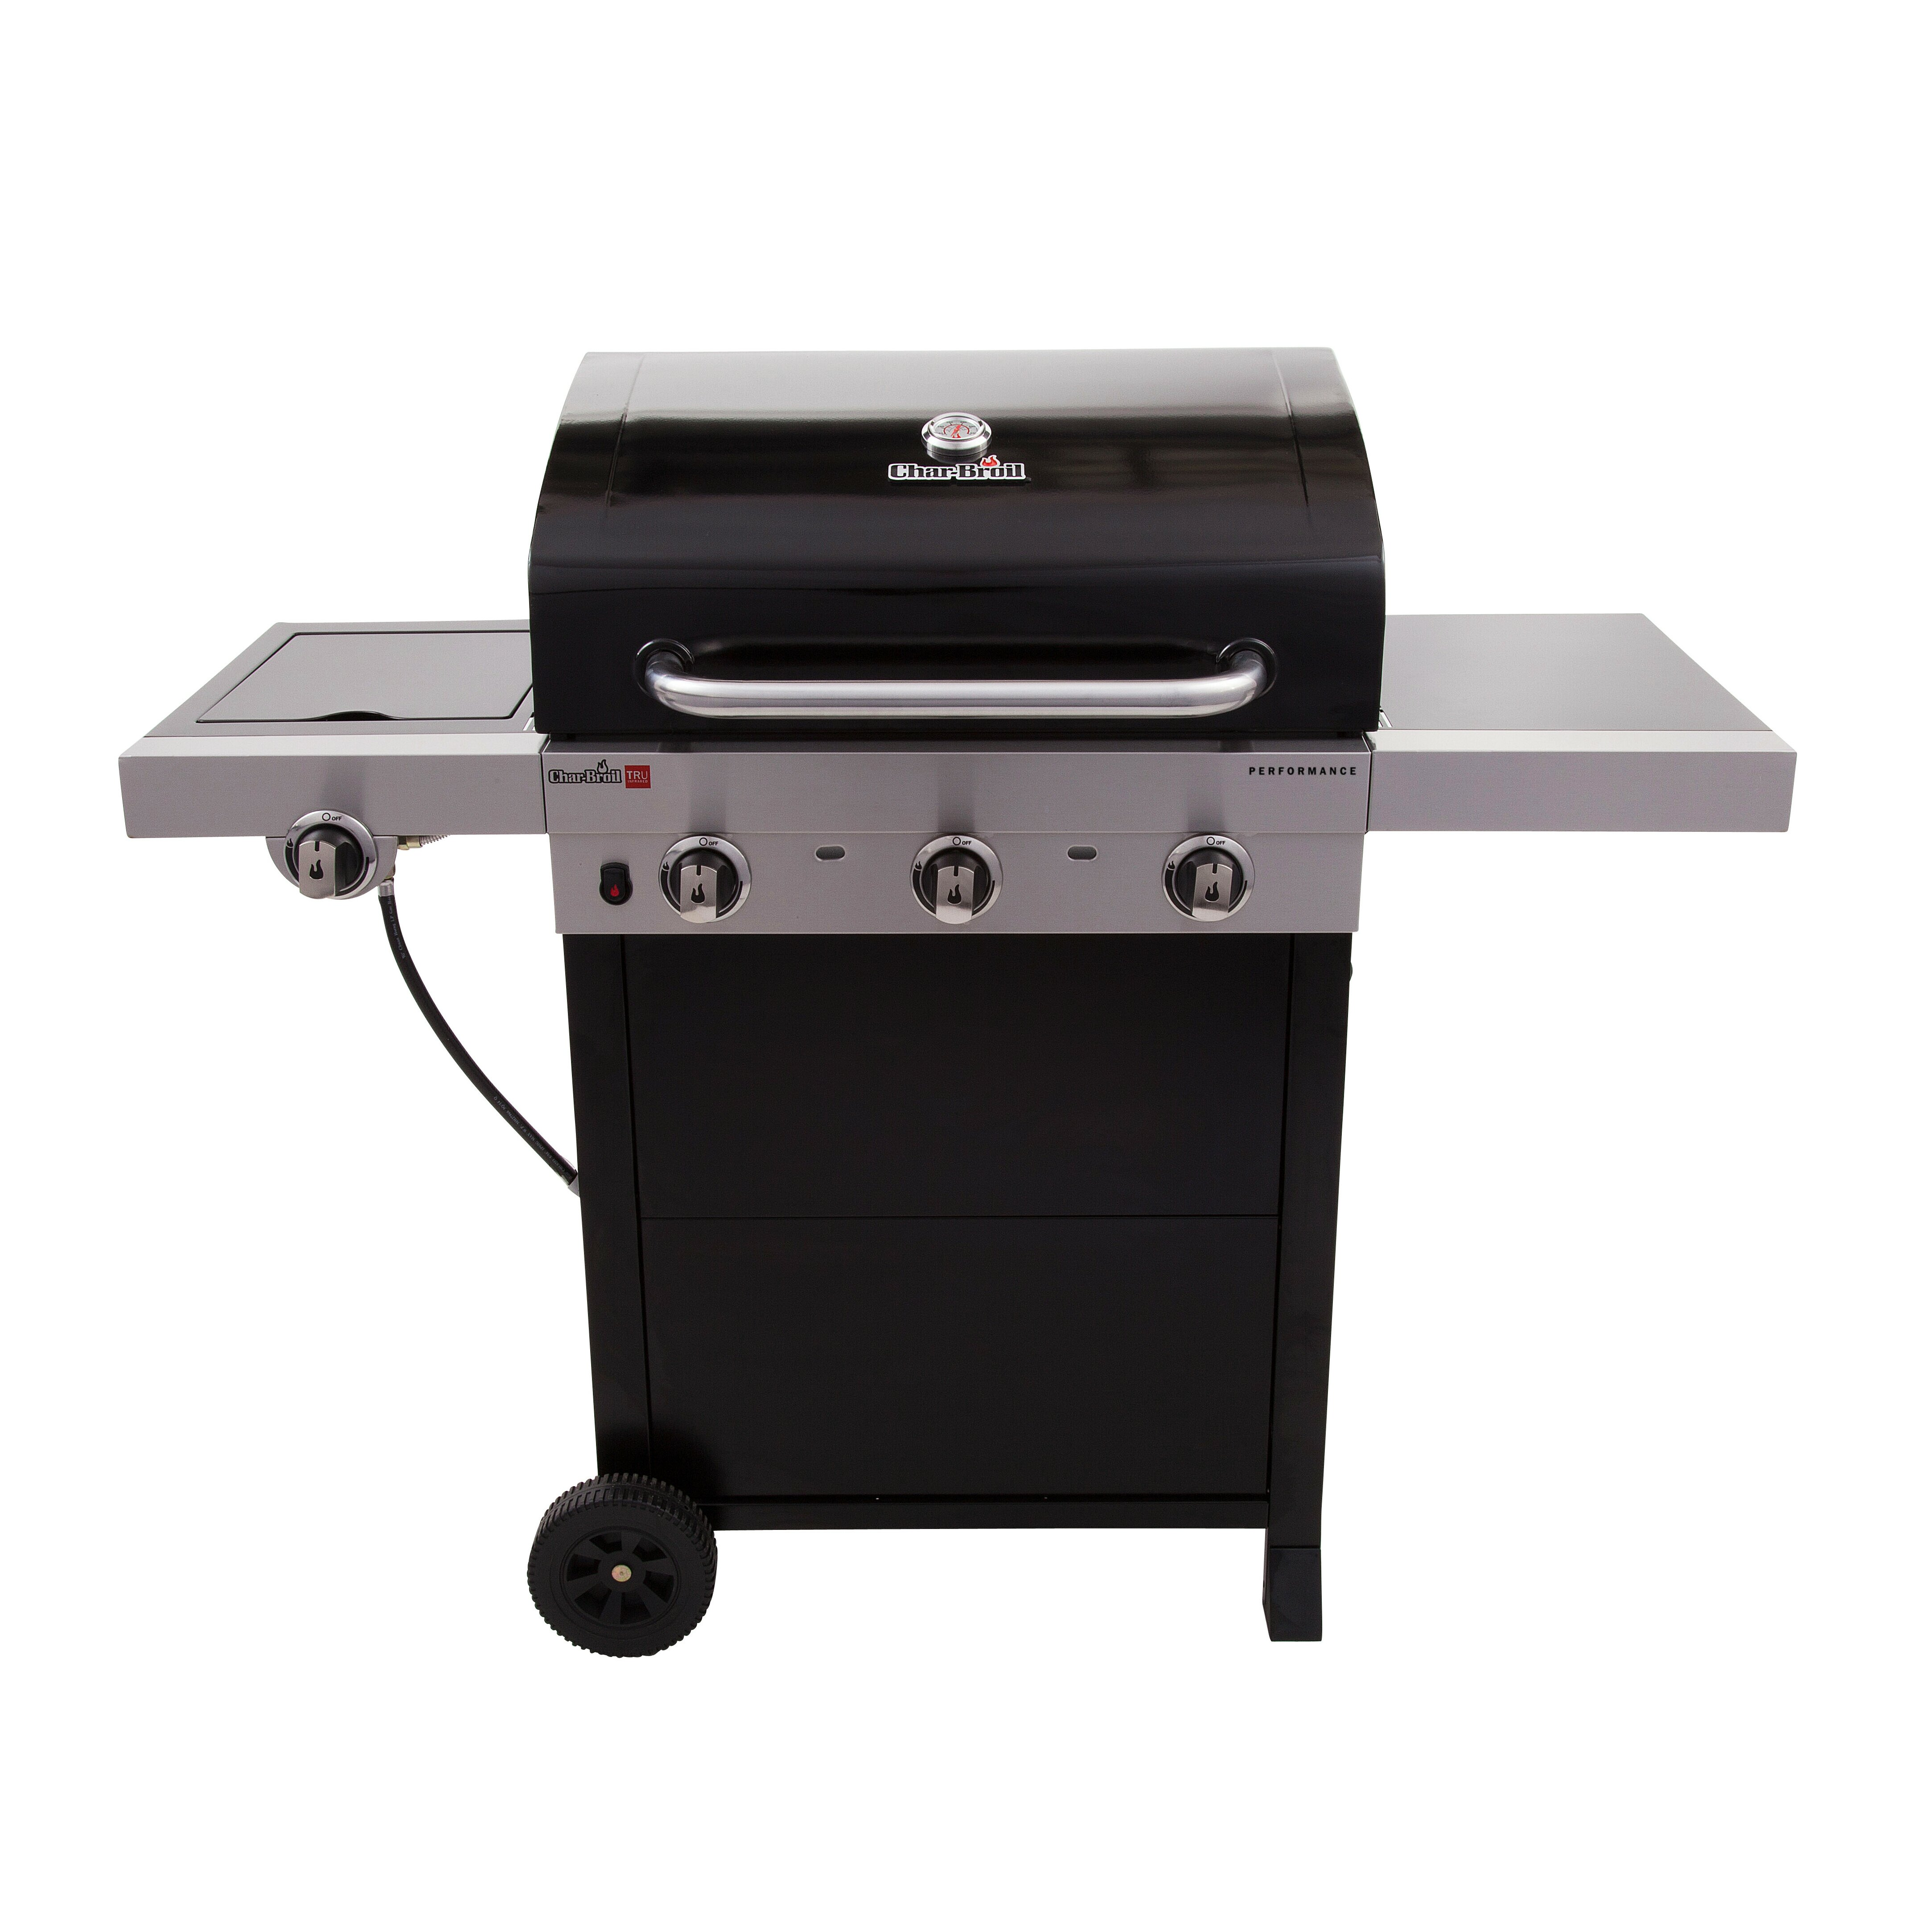 Sides On The Grill: Performance Gas Grill With Side Burner